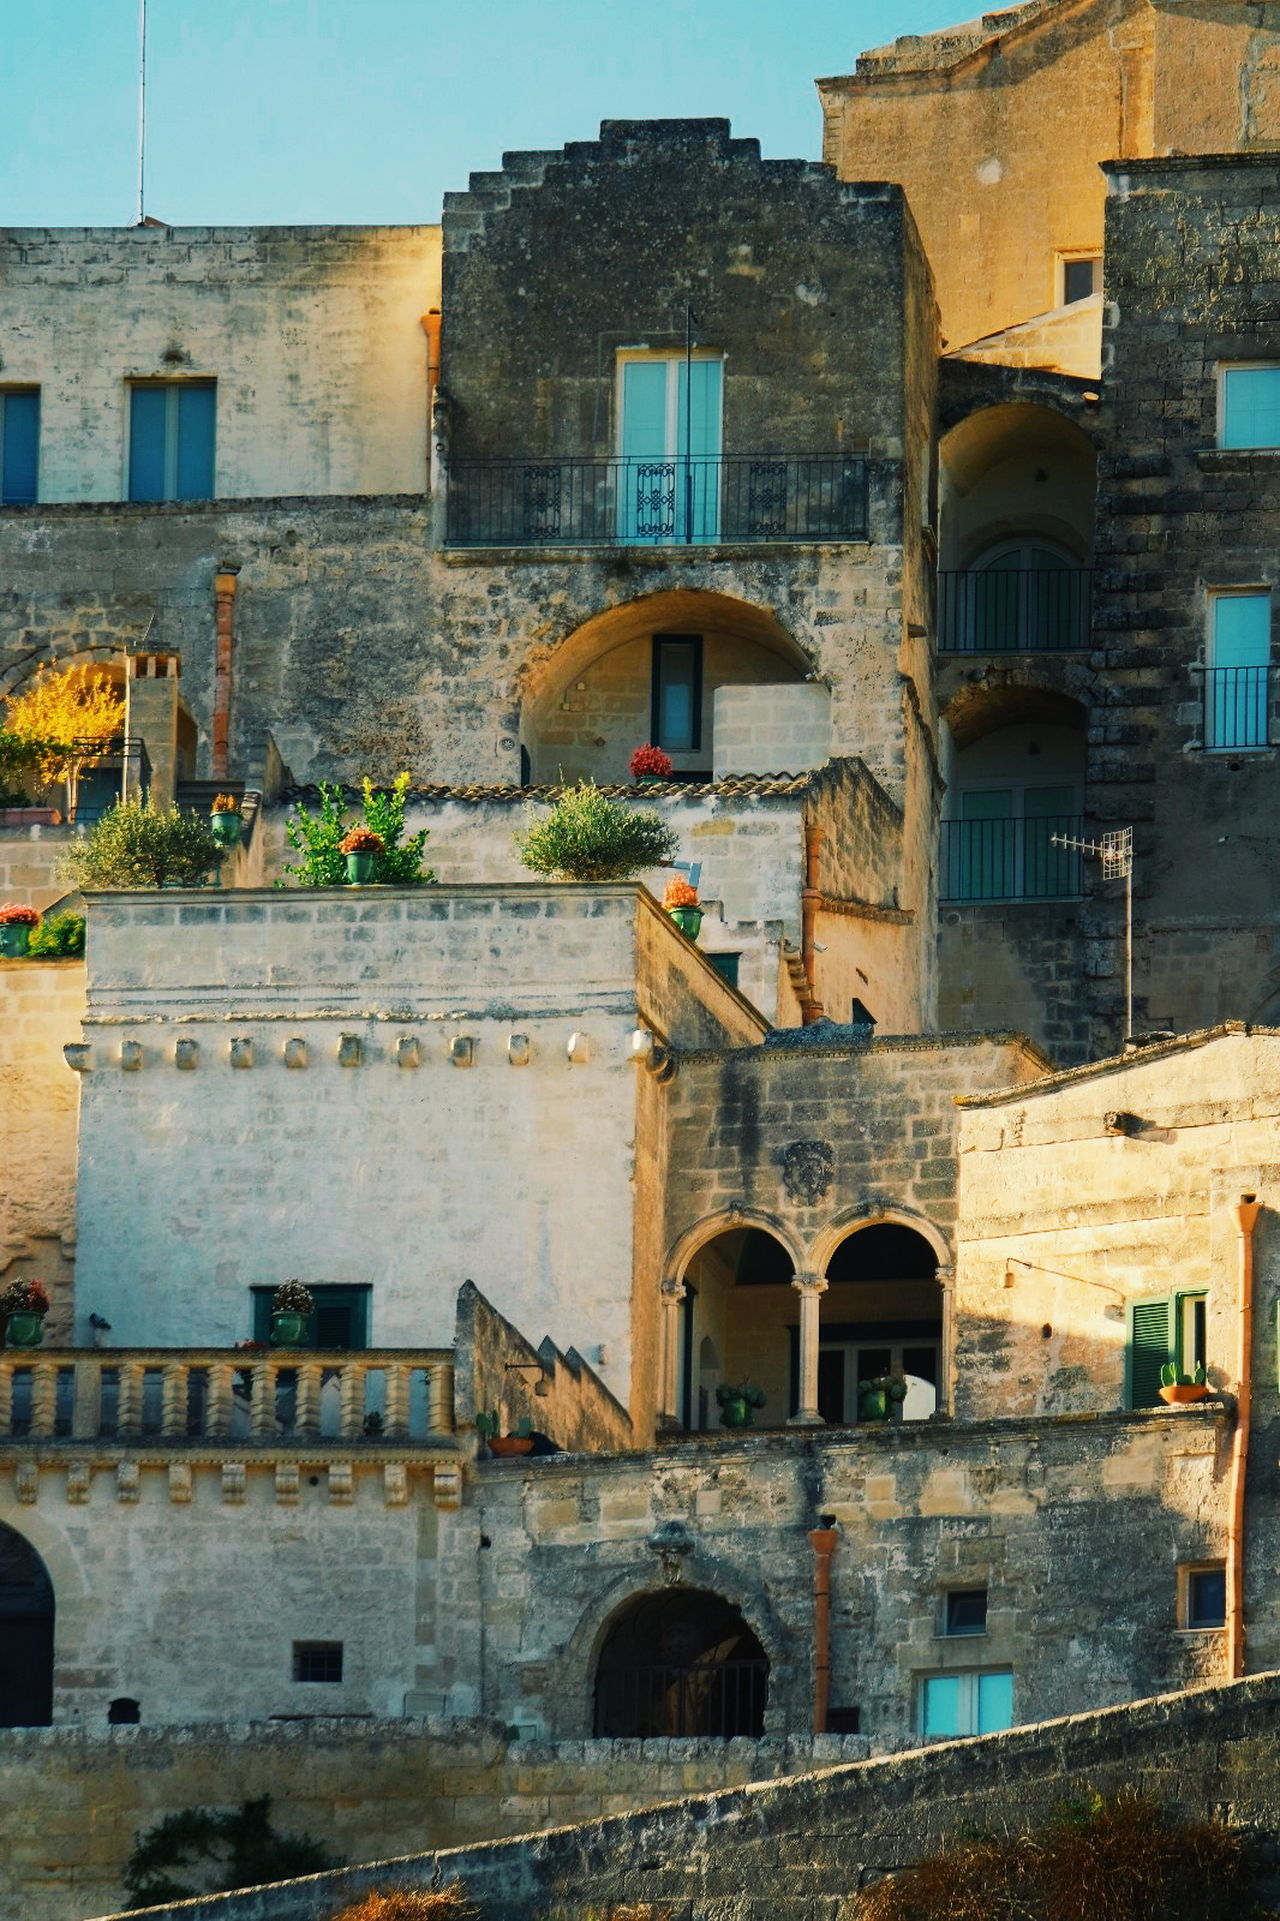 Matera Italy italian magic No People Travel Destinations Window City Architecture Old Buildings Old House Old Town Historical Place Historic City Italian Architecture